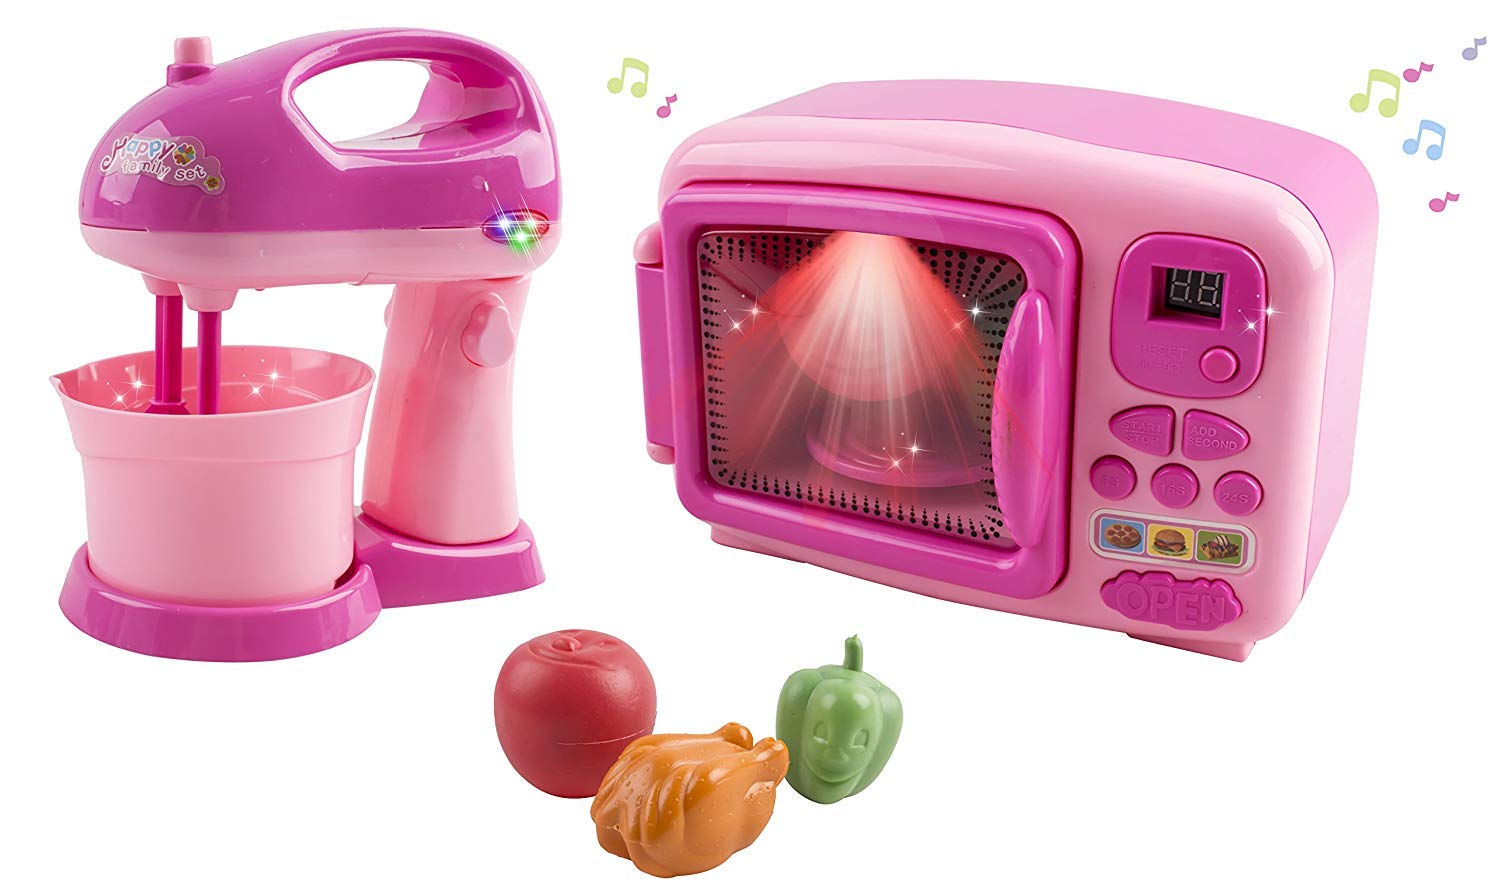 Toy Microwave and Mixing Blender Children's Kitchen Pretend Play Playset Battery Operated Appliance Set with Food Pieces Perfect for Early Learning Educational Preschool Girls Cooking Toys Pink